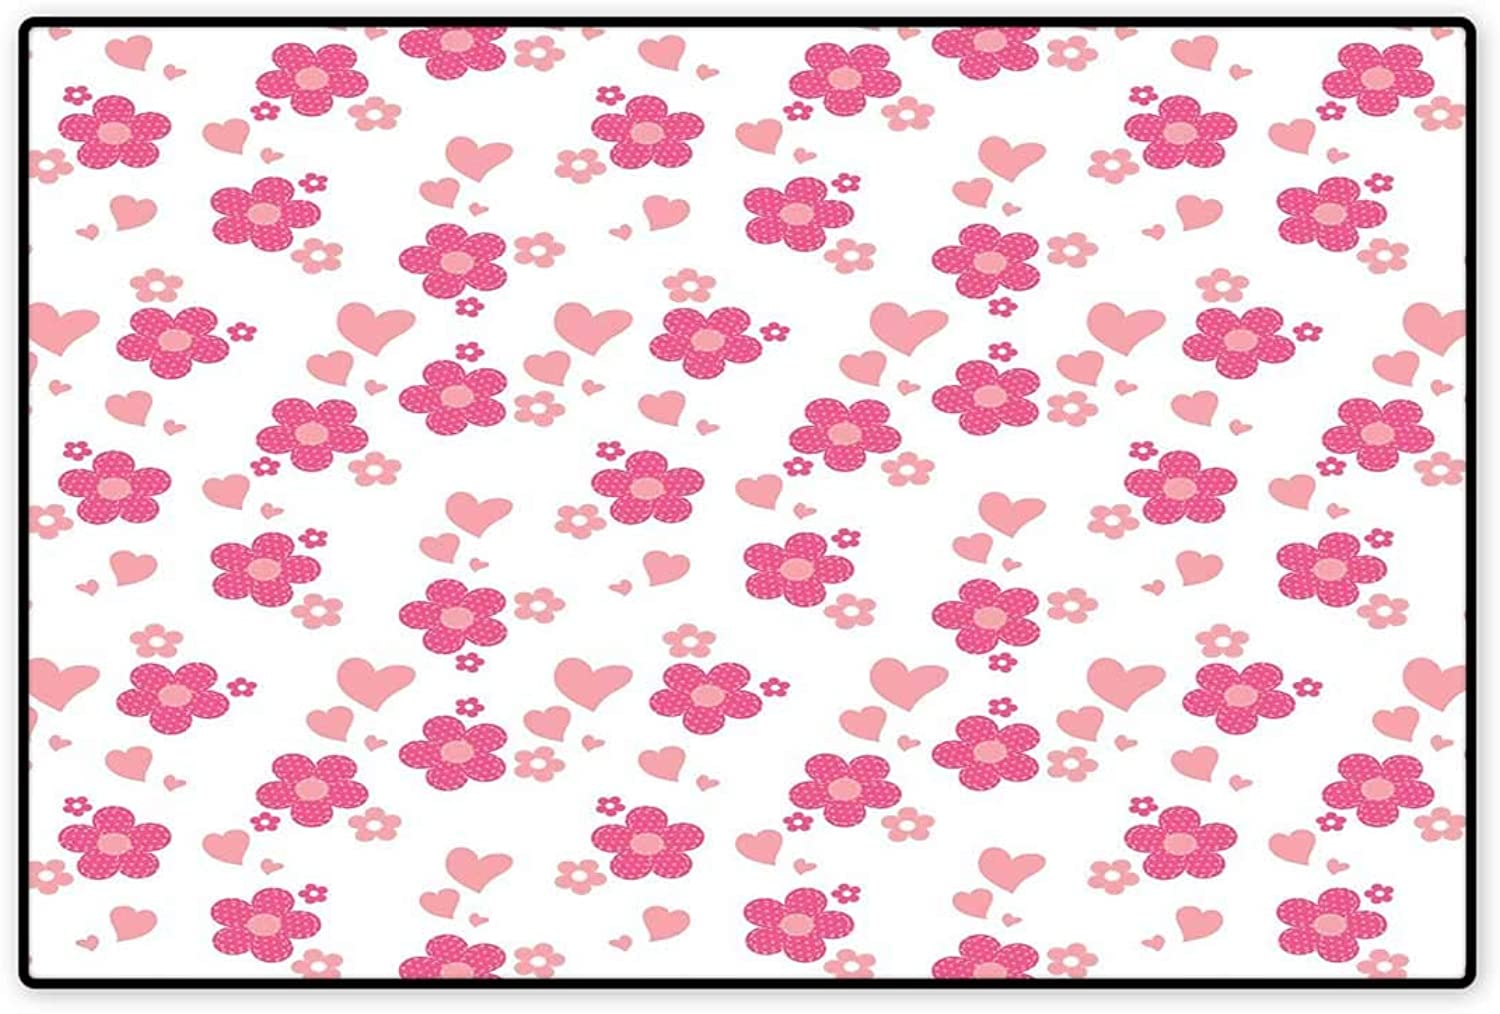 Pink and White Door Mat Indoors Patchwork Style Daisies with Big and Little Hearts Romantic Springtime Floor Mat Pattern 32 x48  Pink Coral White